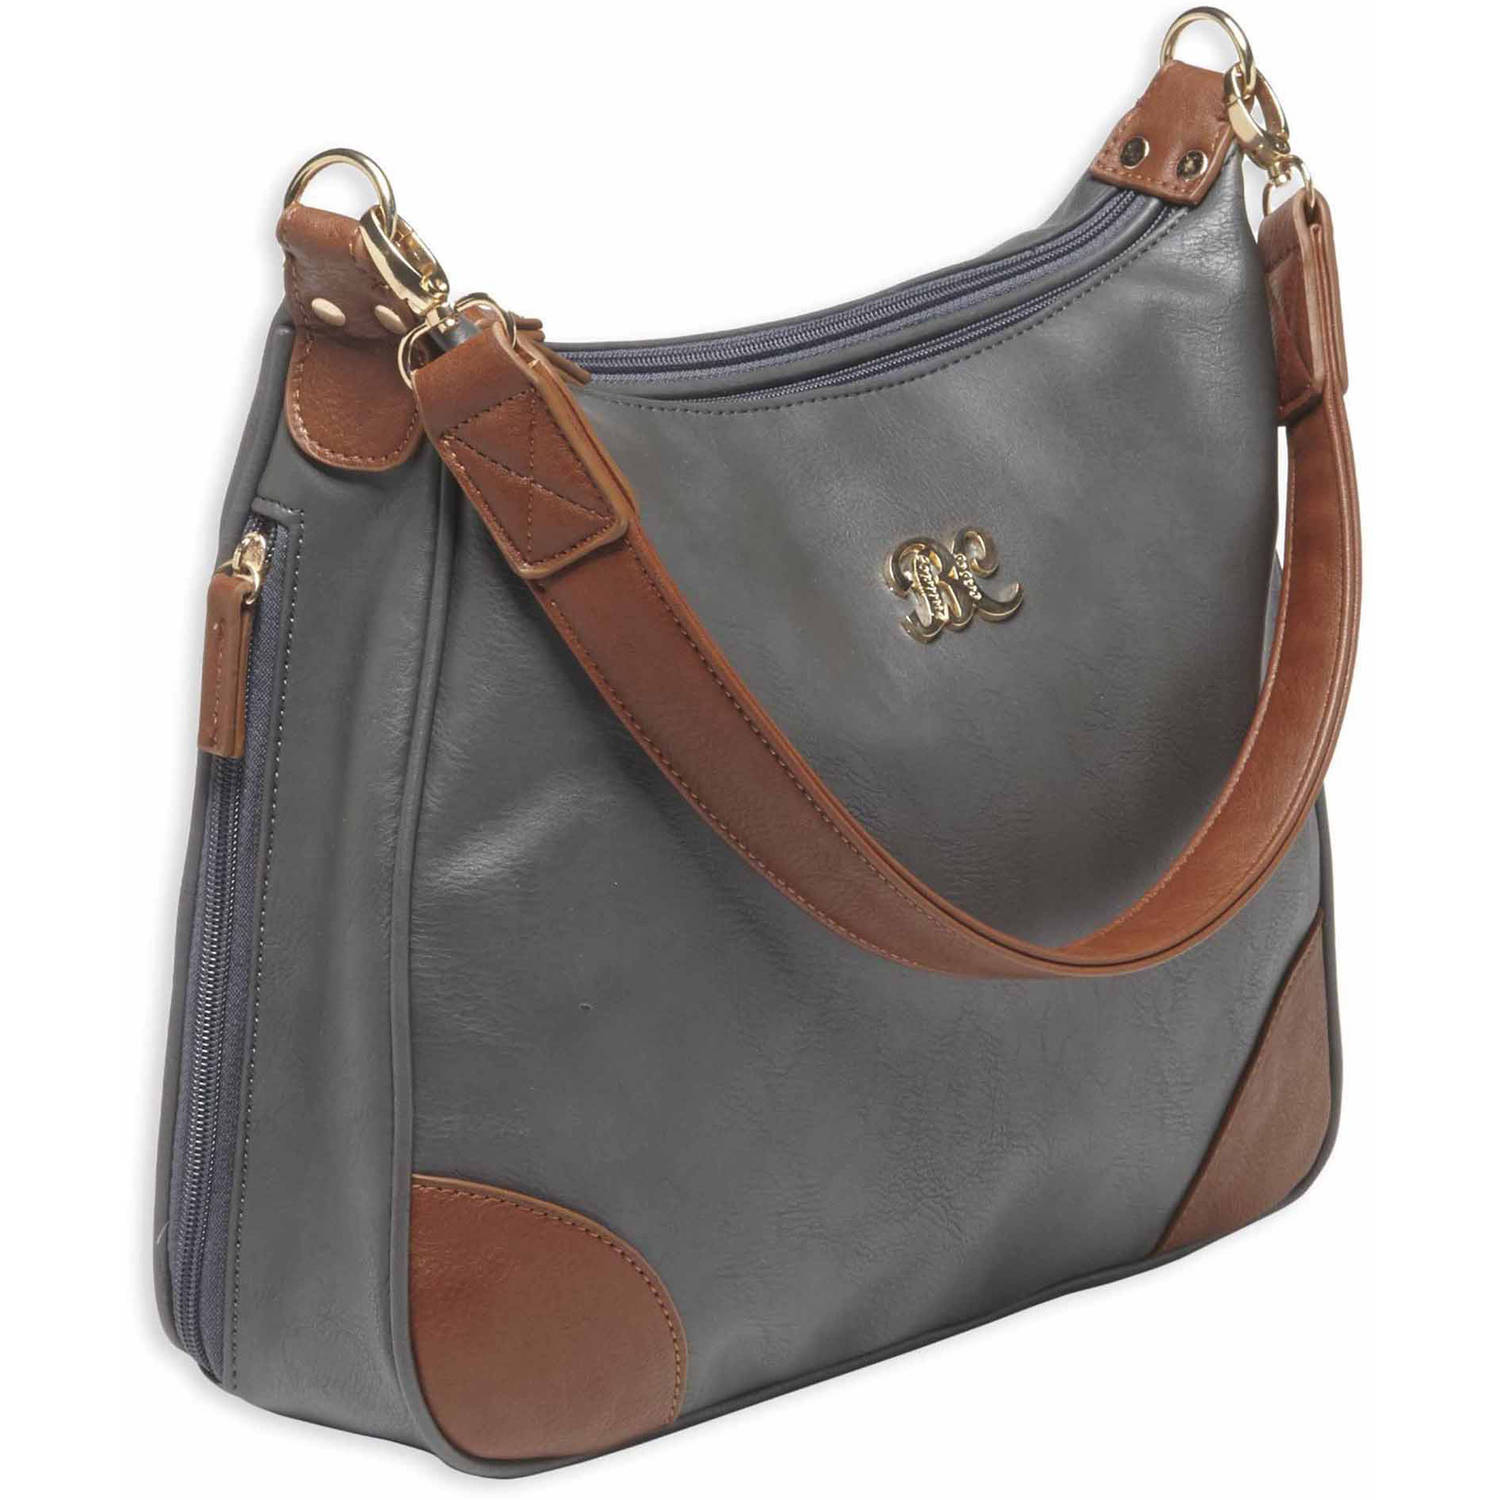 Bulldog Cases Hobo Style Purse with Holster, Grey/Tan